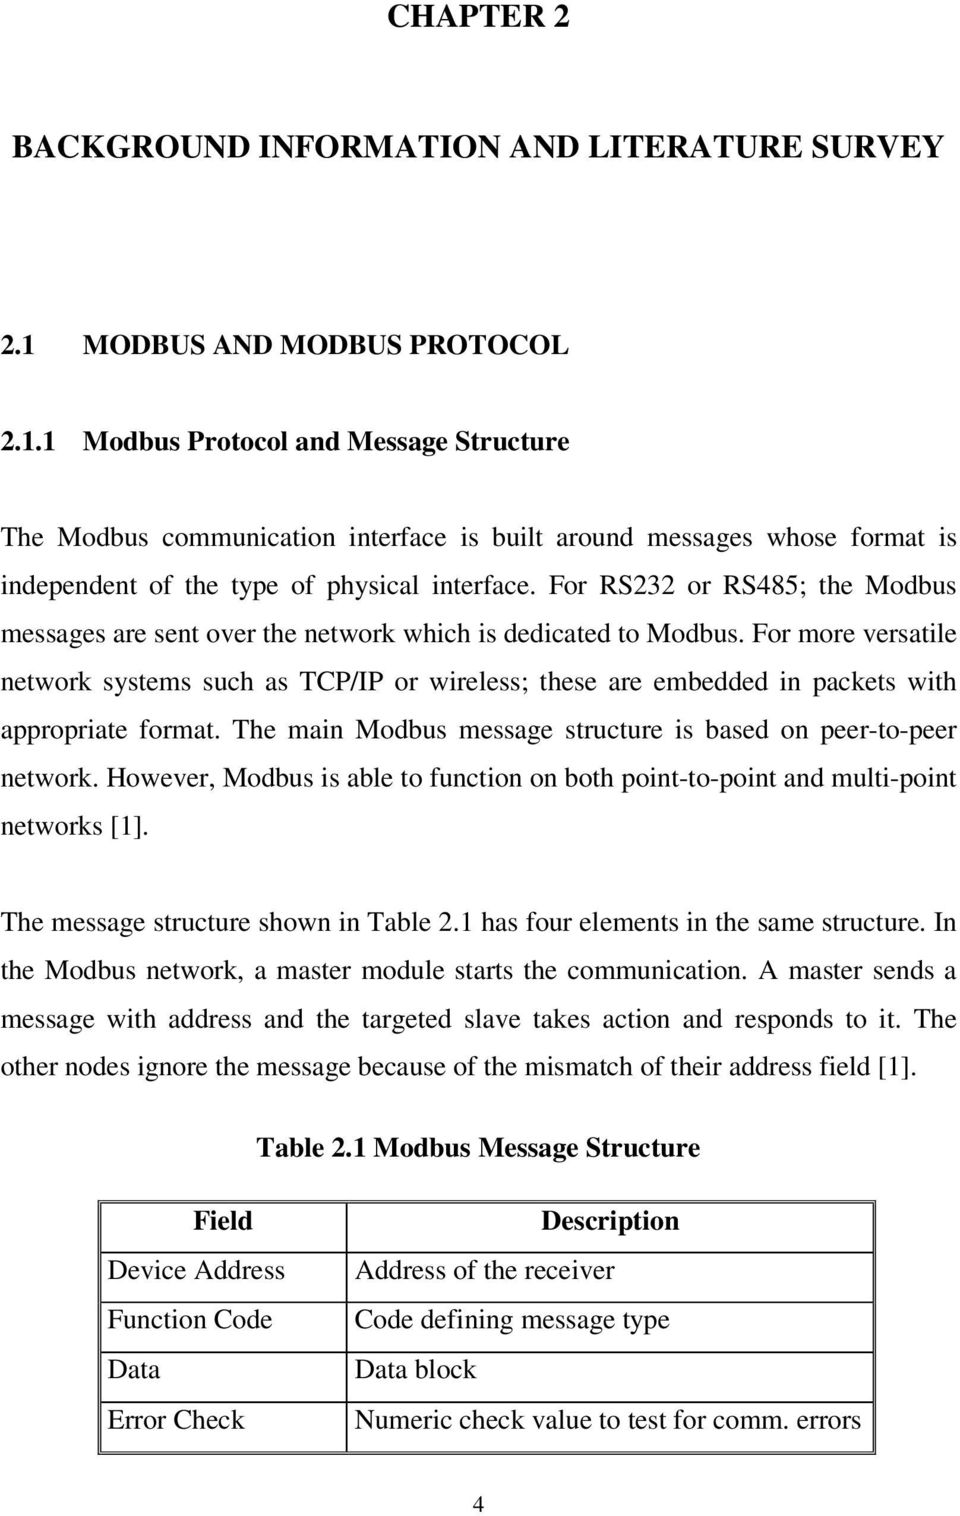 For RS232 or RS485; the Modbus messages are sent over the network which is dedicated to Modbus.